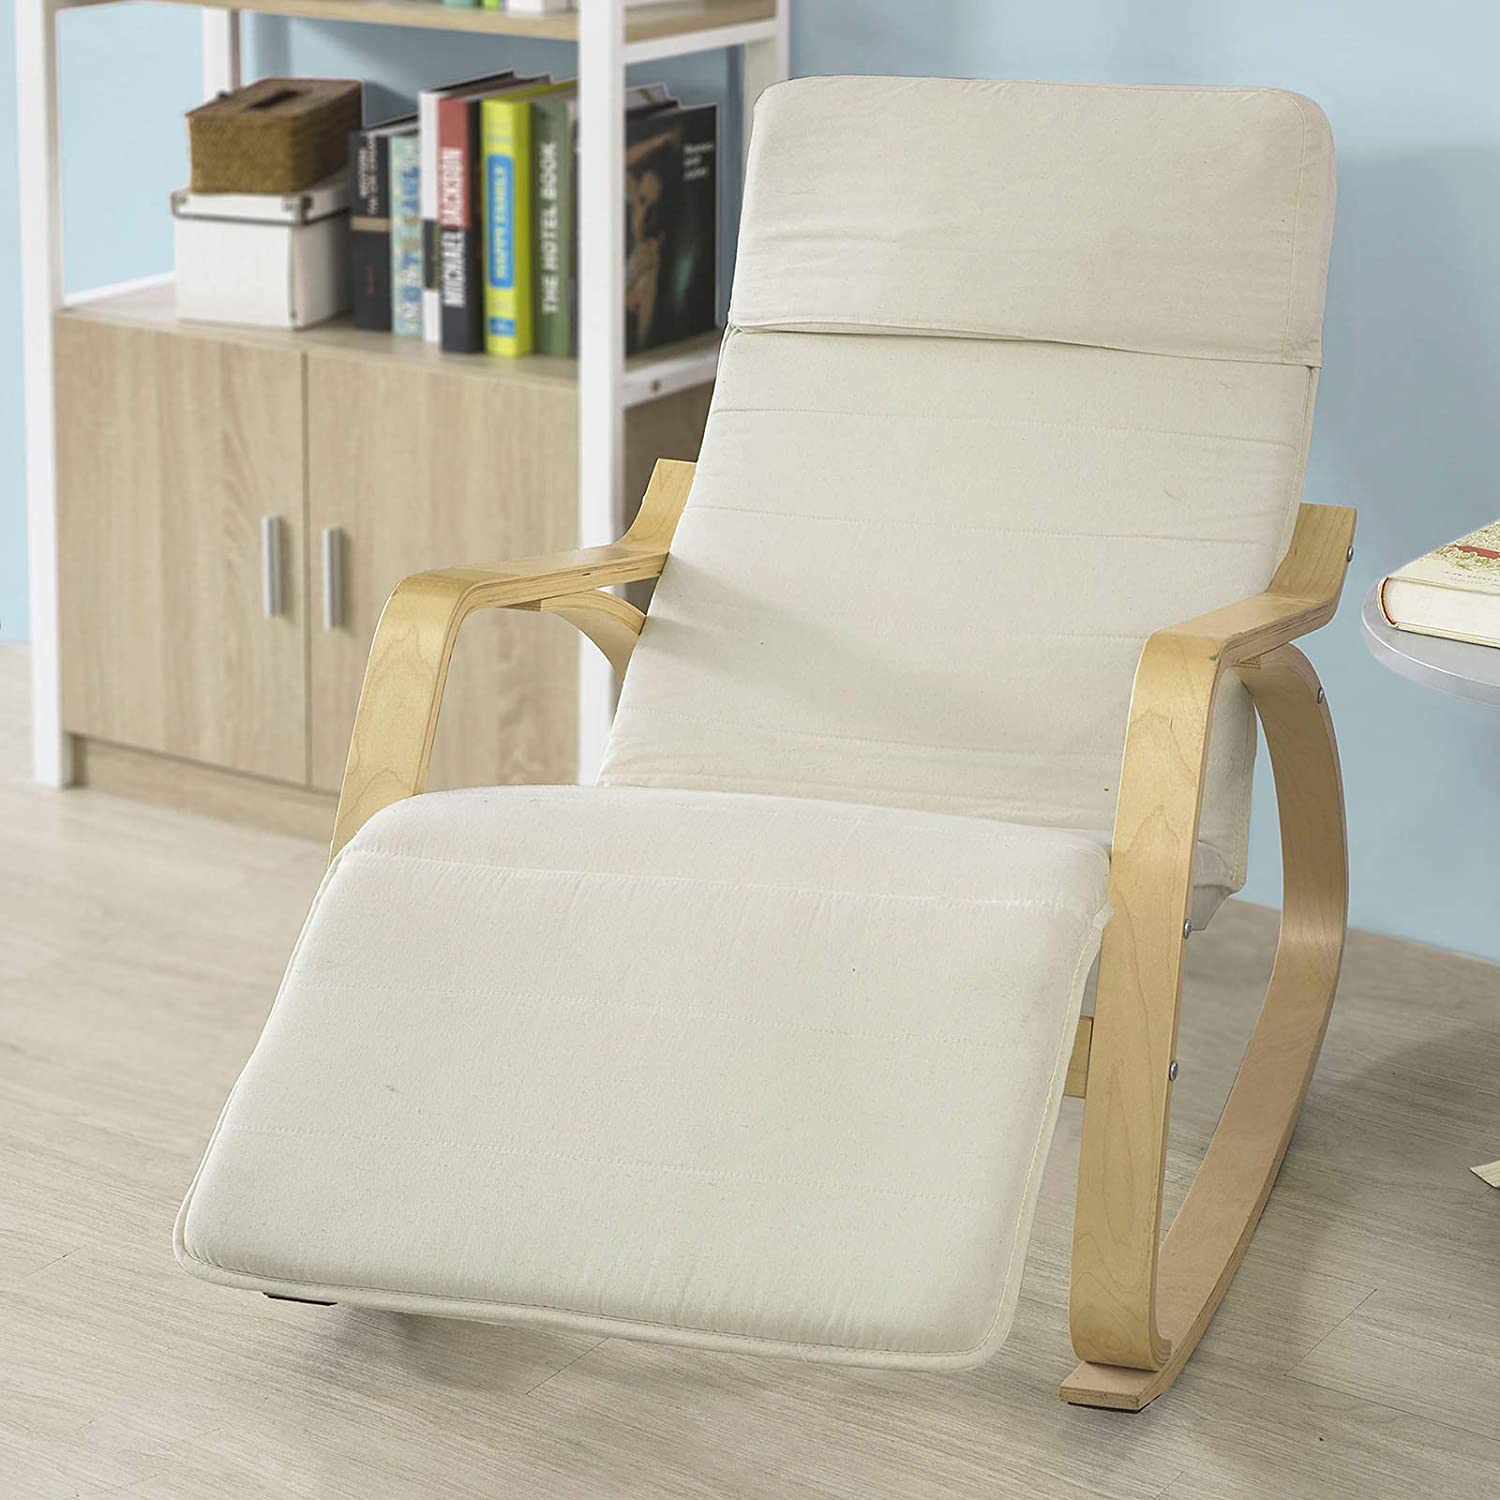 Haotian Comfortable Relax Rocking Chair with Foot Rest Design, Lounge Chair, Recliners Poly-Cotton Fabric Cushion,FST16-W,White color